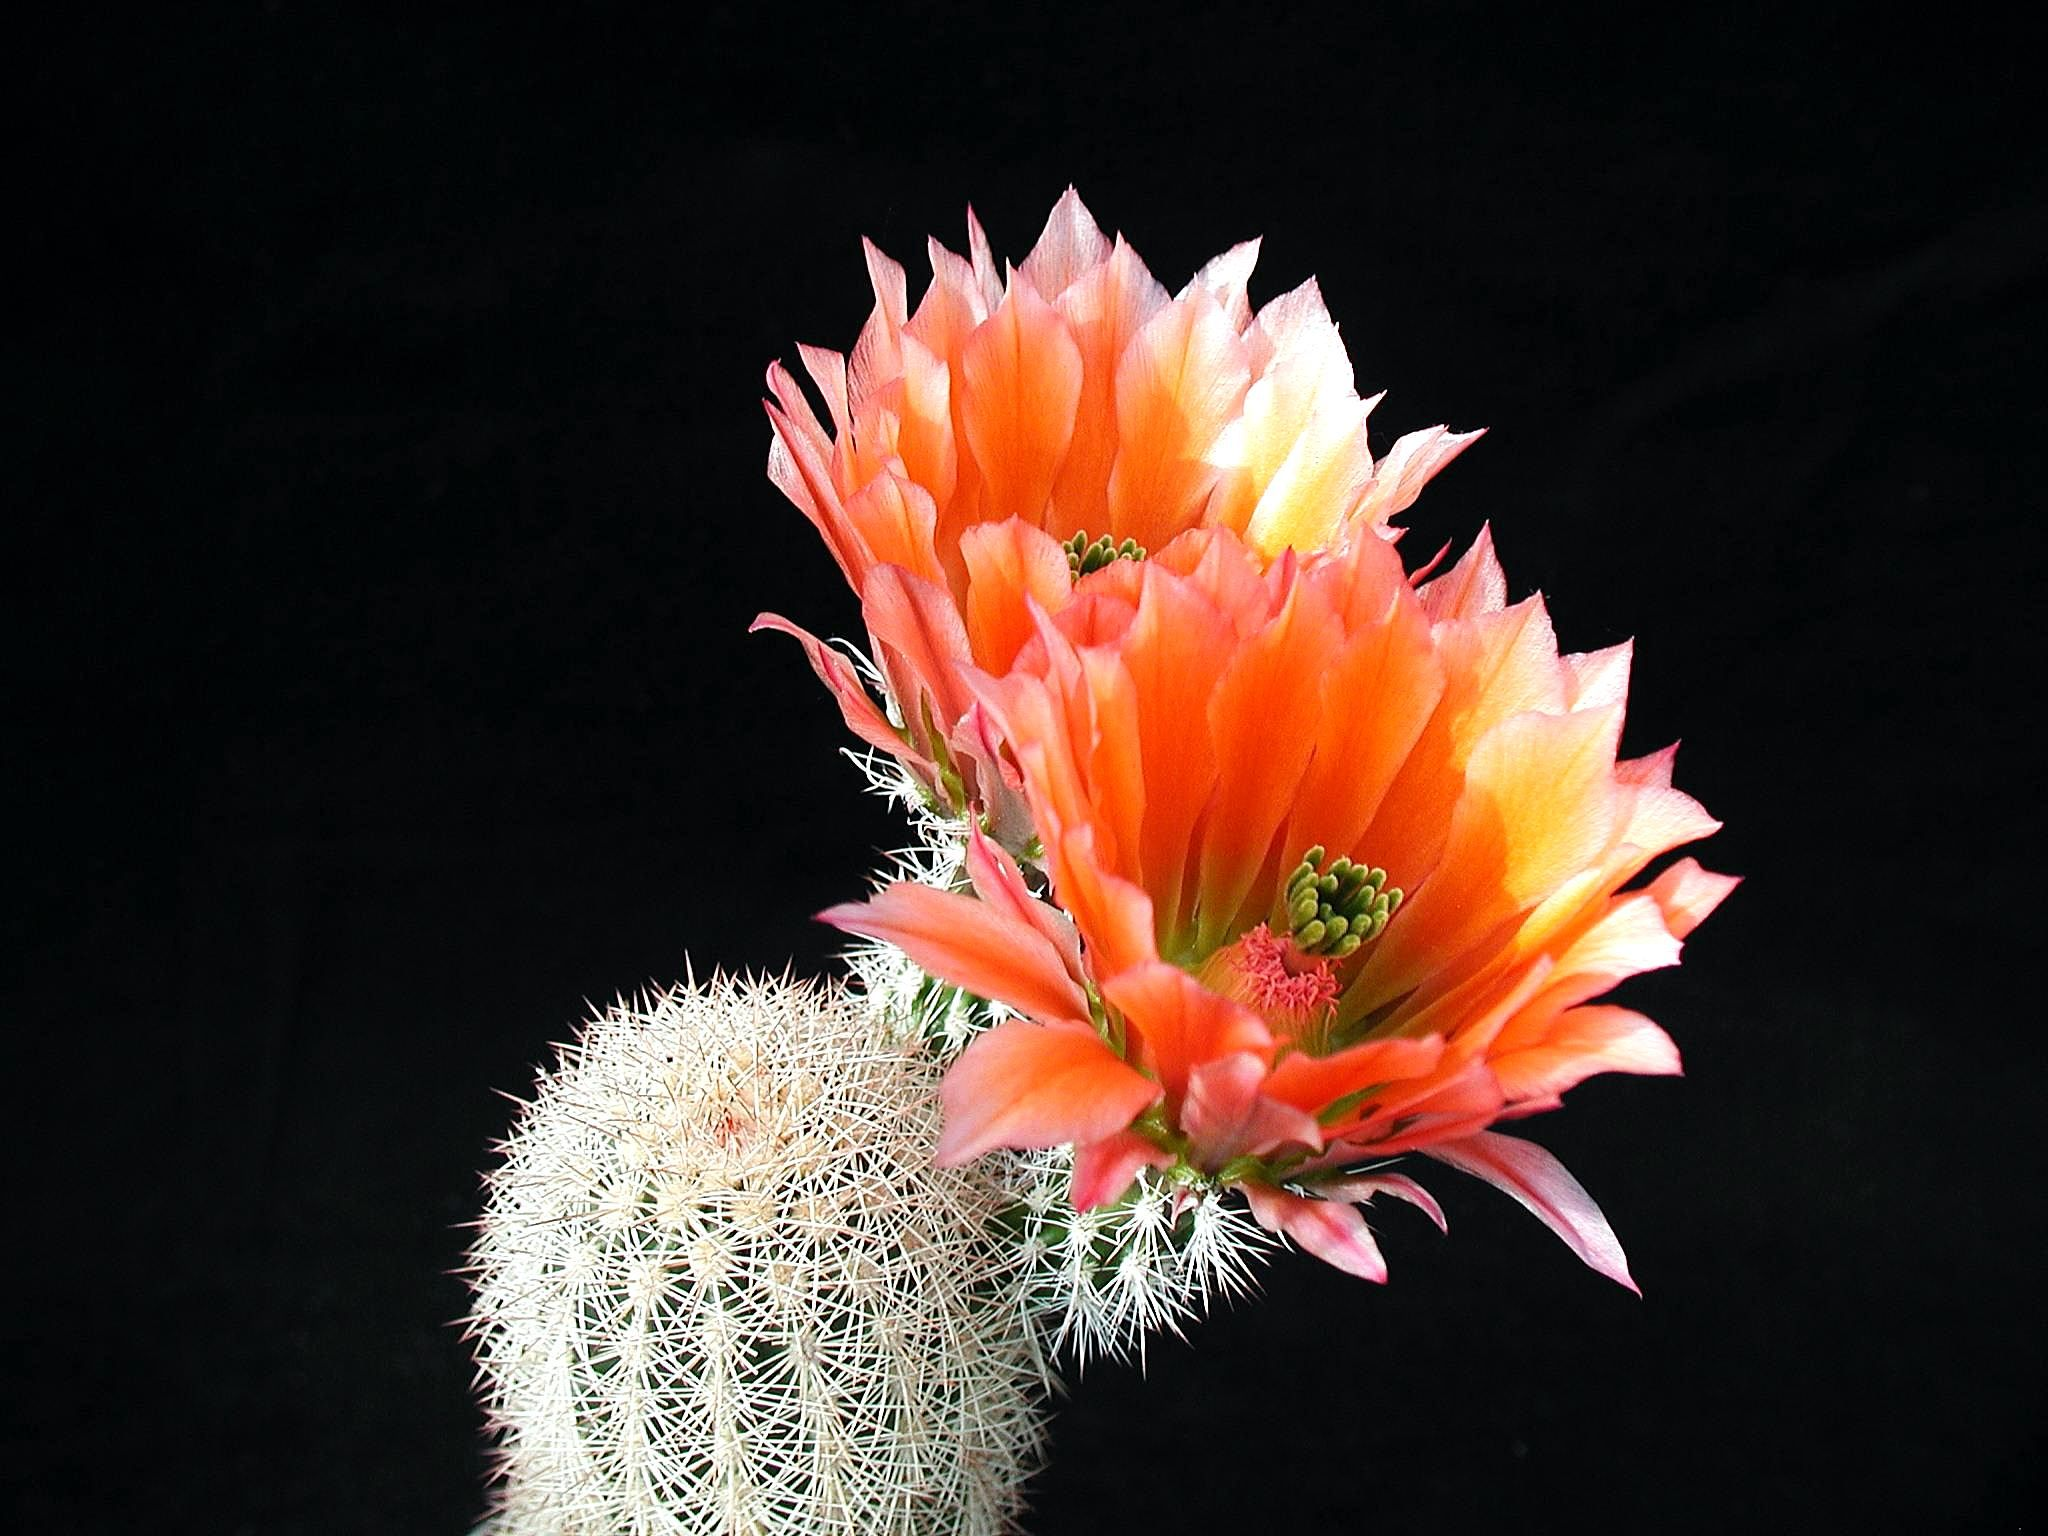 hd cactus wallpapers - photo #49